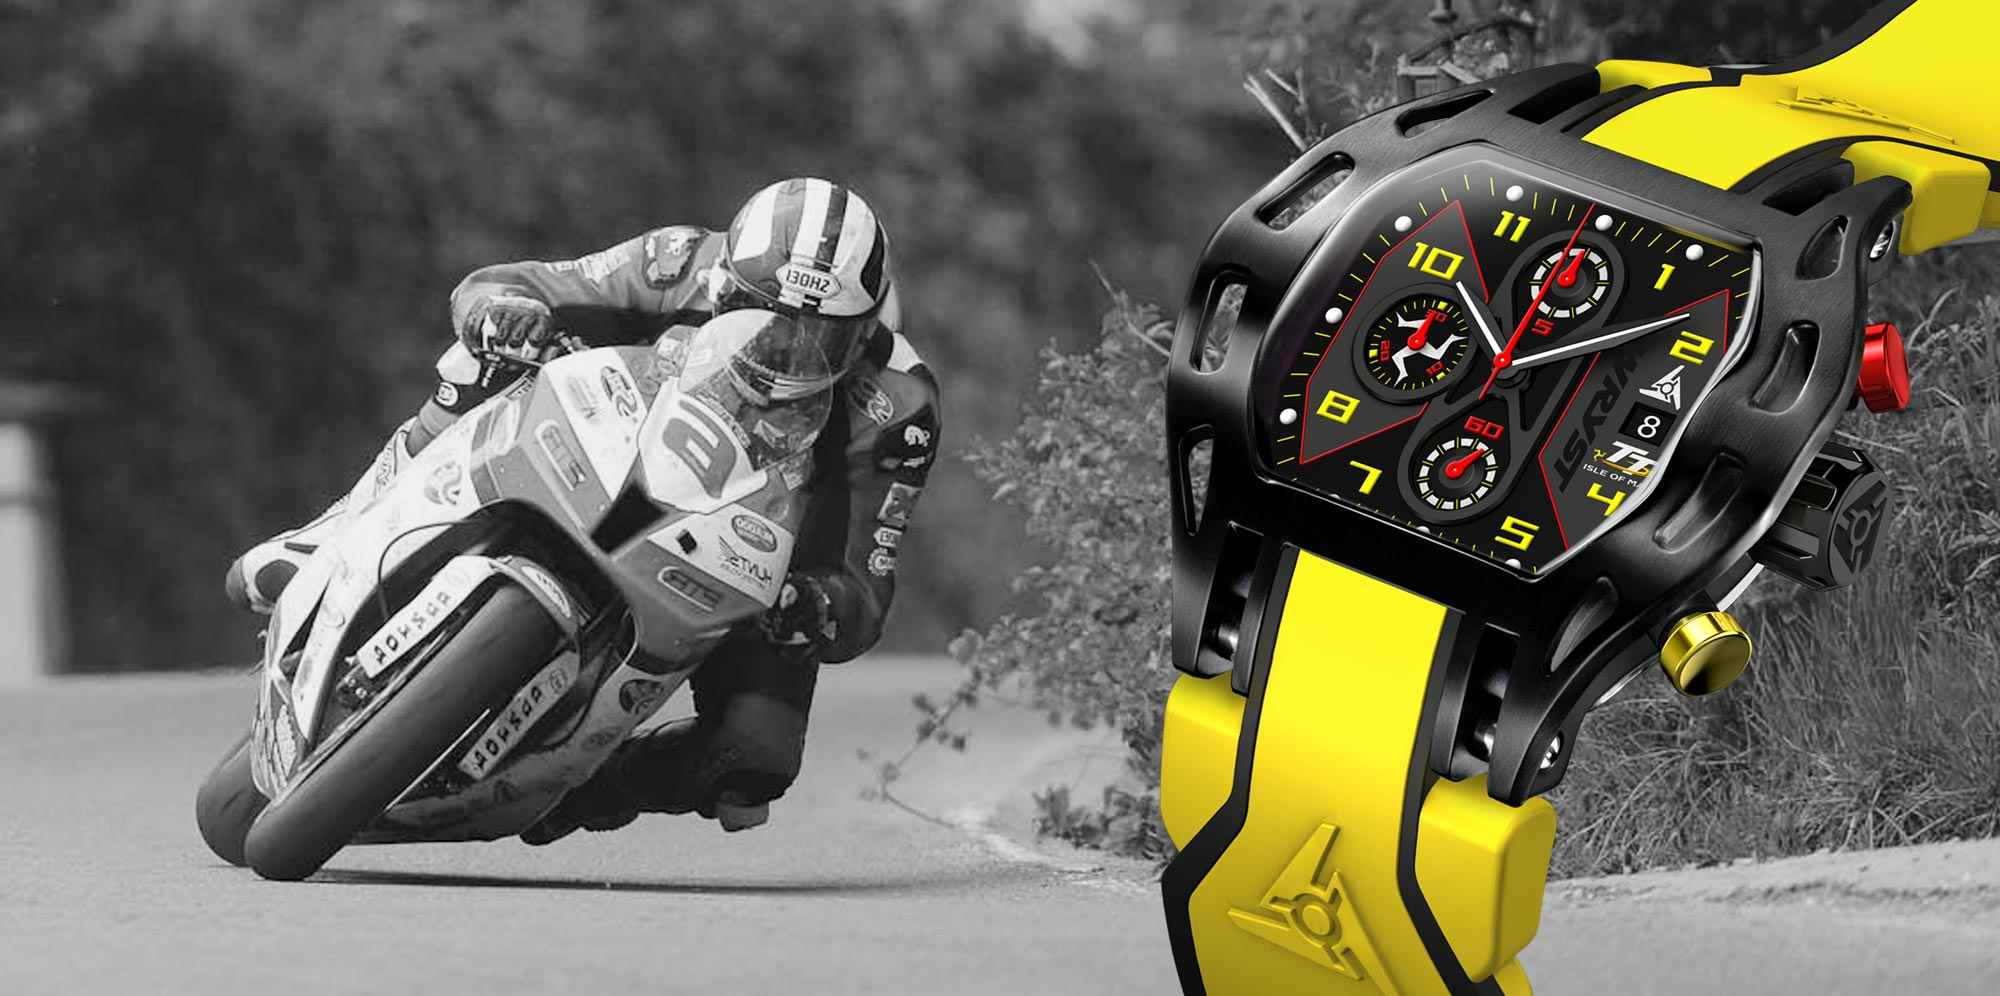 Isle of Man TT 2016 montre de sport